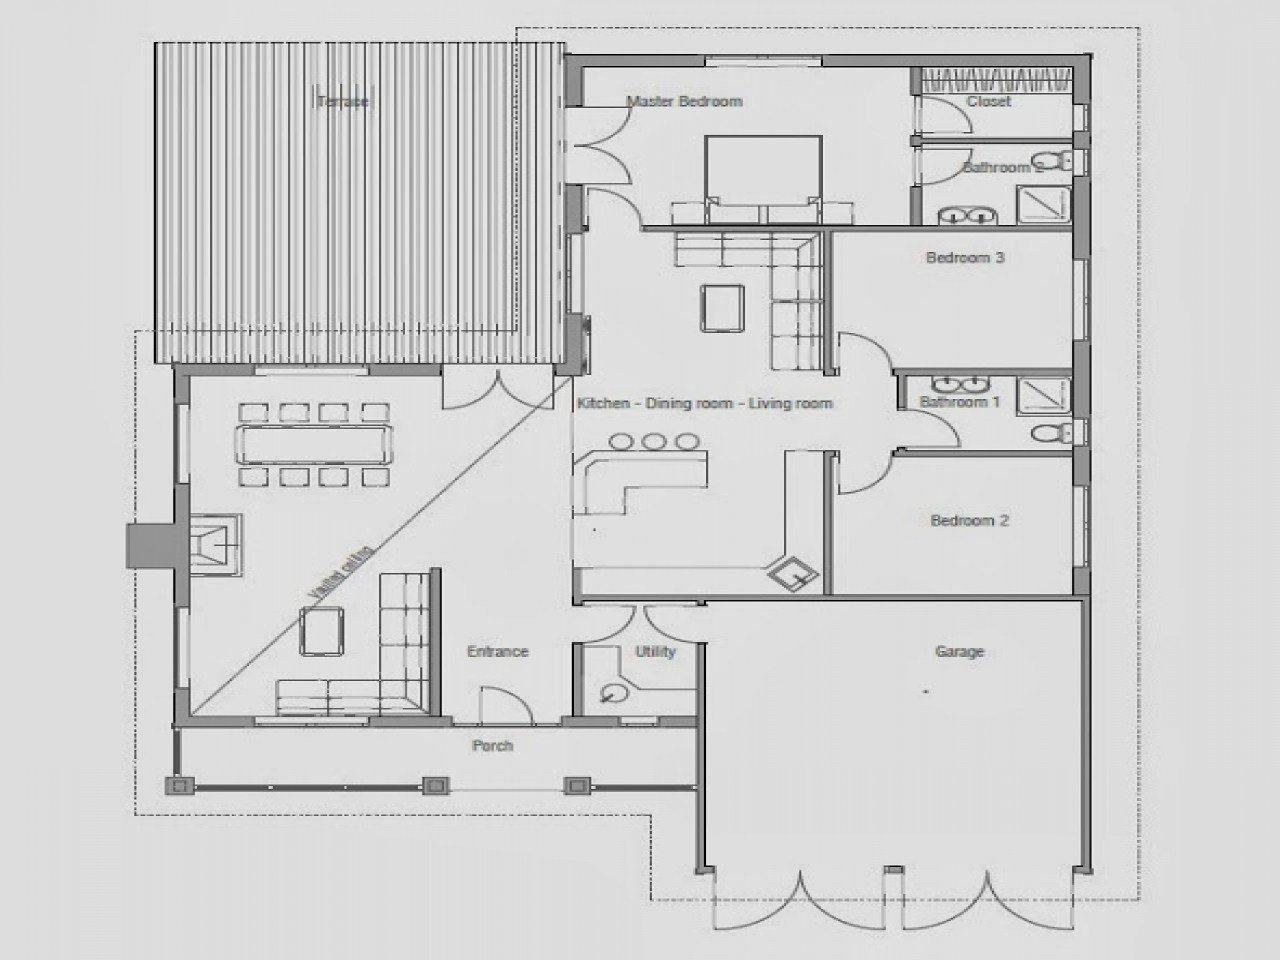 Best Affordable 6 Bedroom House Plans 7 Bedroom House With Pictures